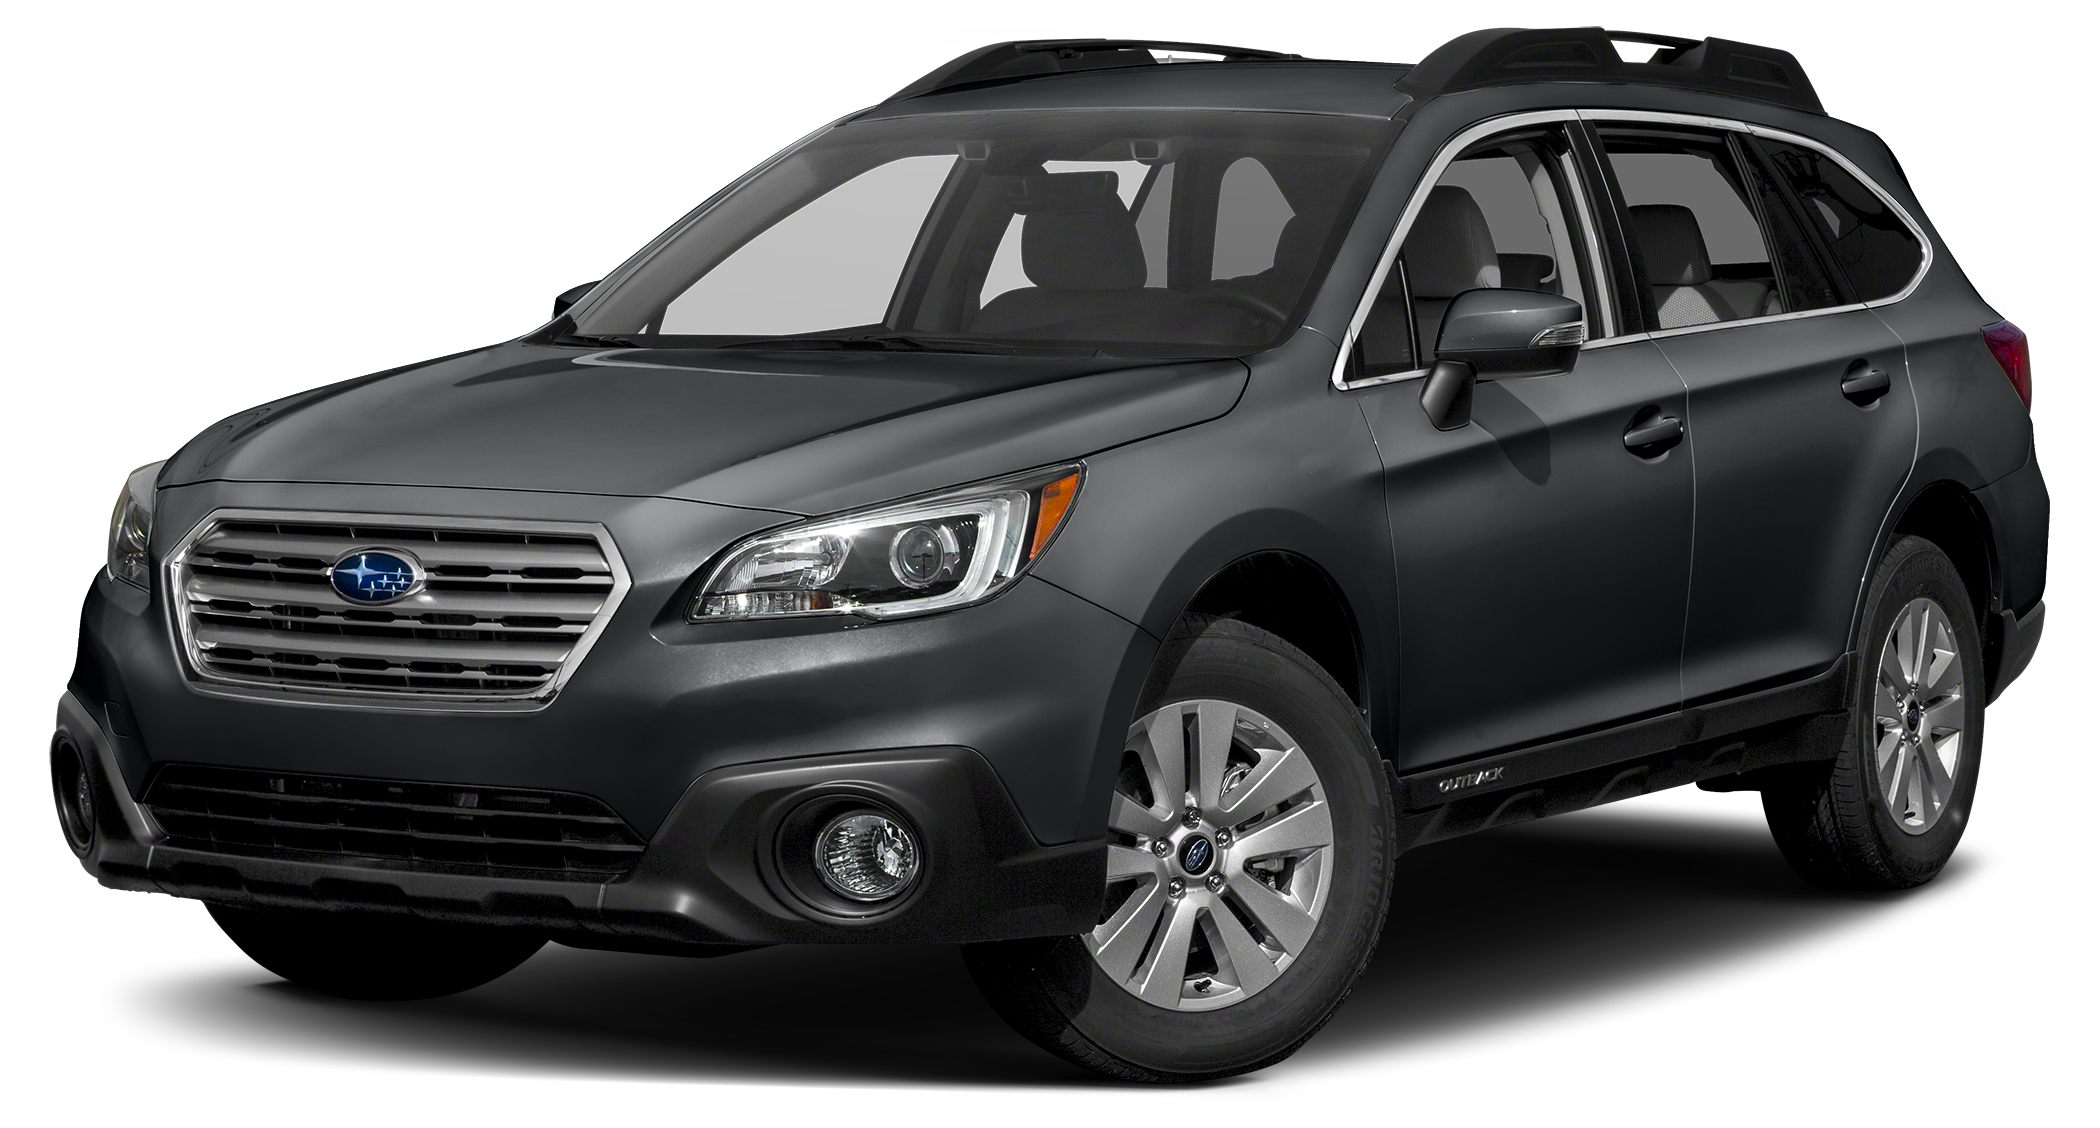 2017 Subaru Outback 25i Premium Thank you for visiting another one of Conley Subarus exclusive l